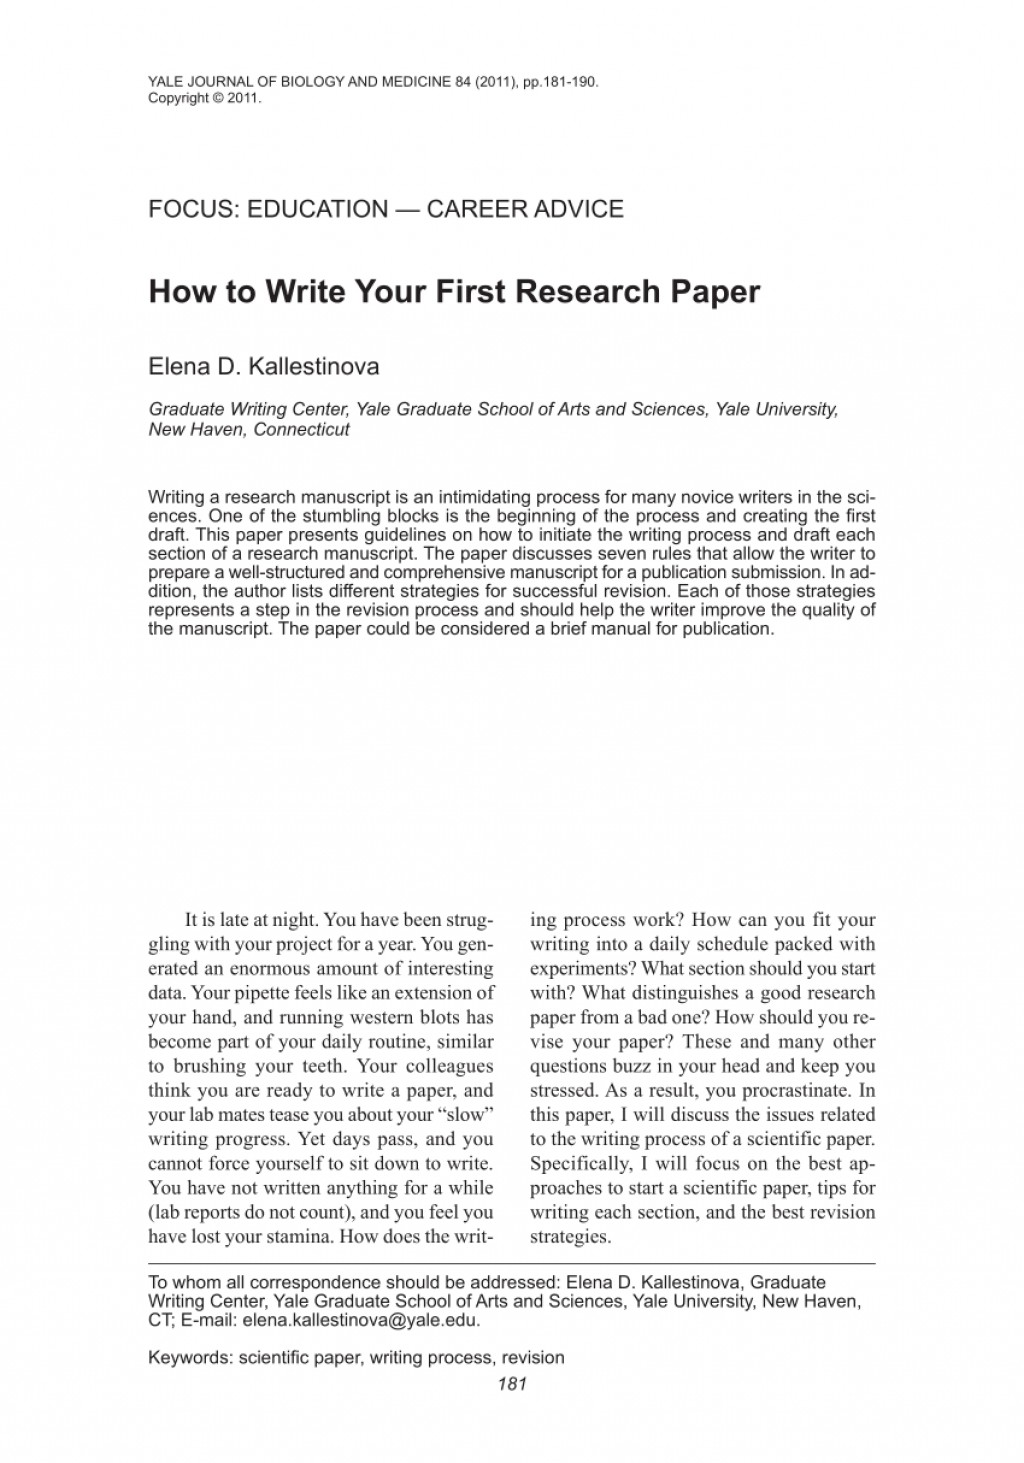 004 Research Paper Biology Papers Sensational Pdf Ideas For High School Topics Marine Large